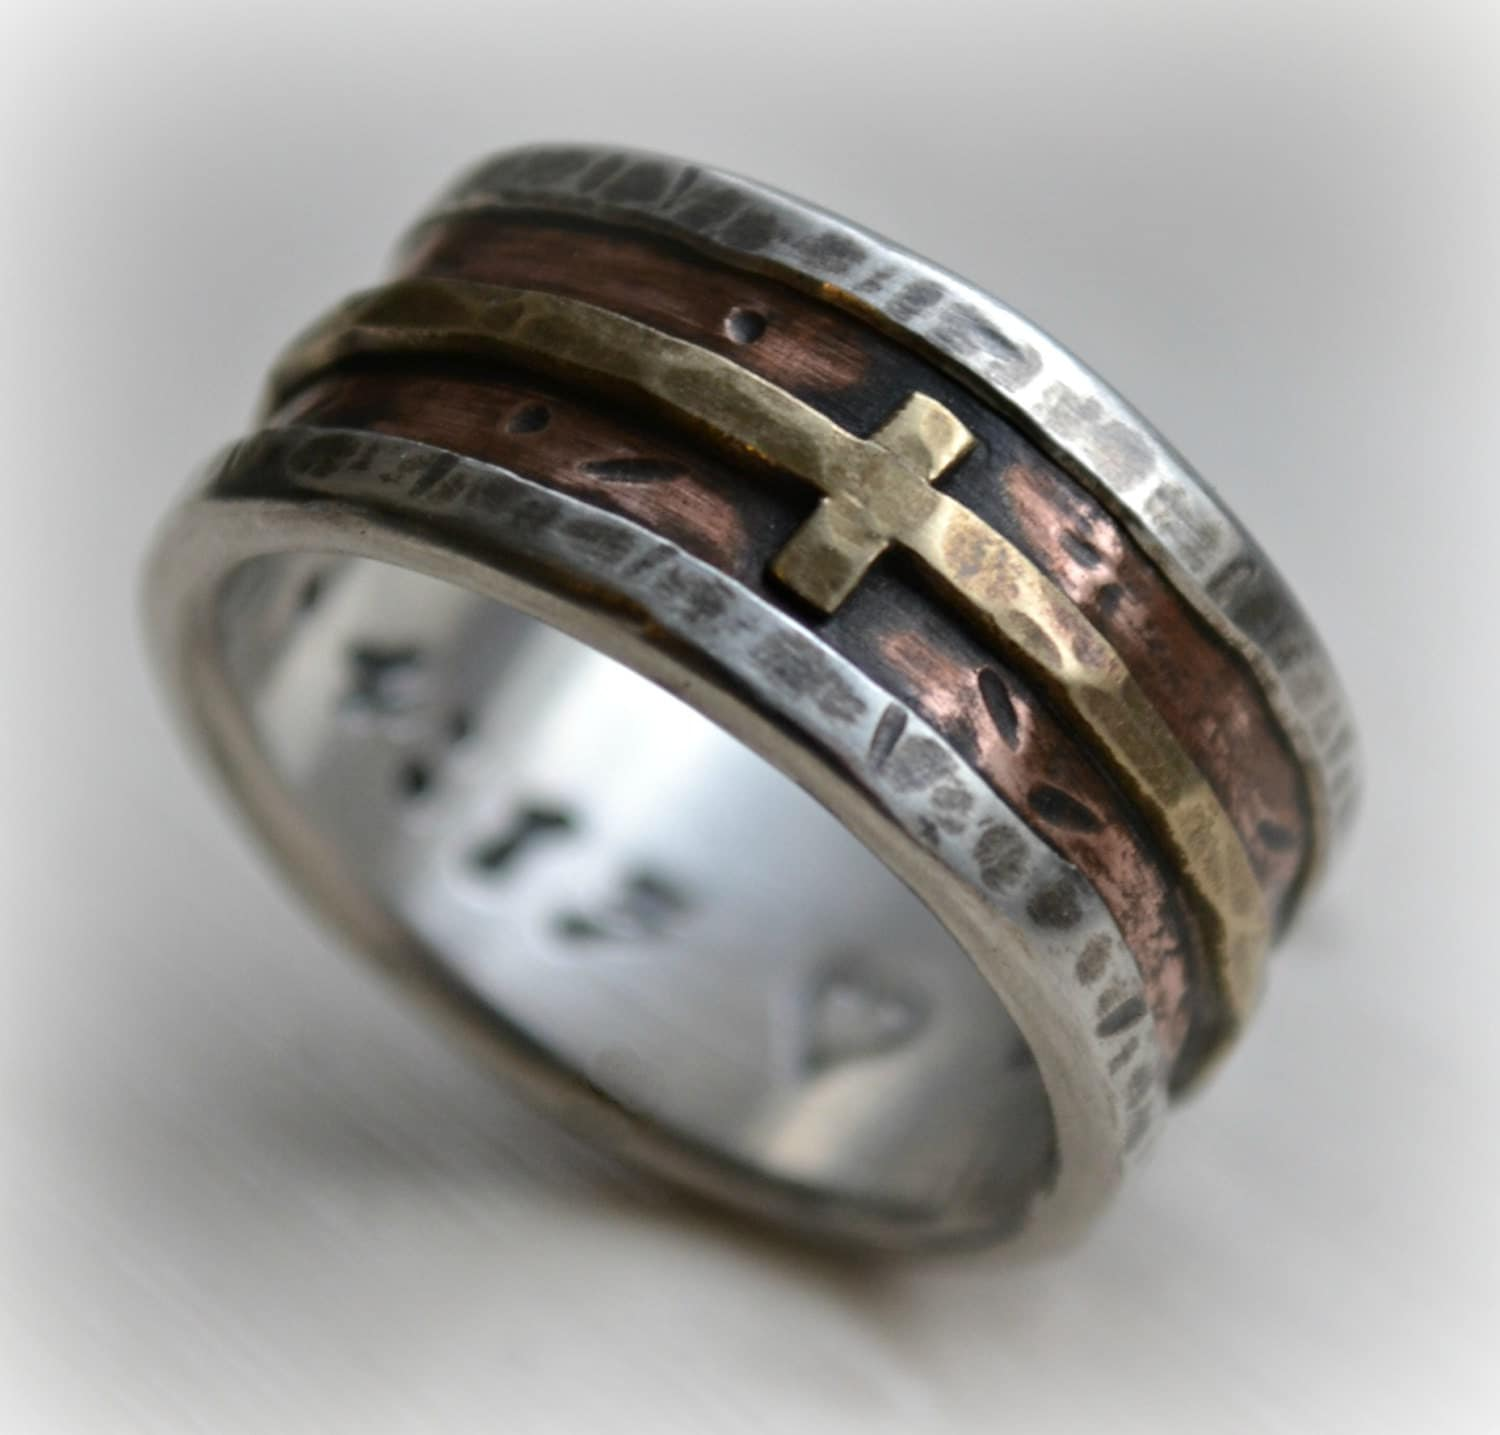 mens cross ring silver mens wedding bands mens wedding band rustic fine silver copper and brass cross handmade artisan designed wide band ring manly Christian ring customized